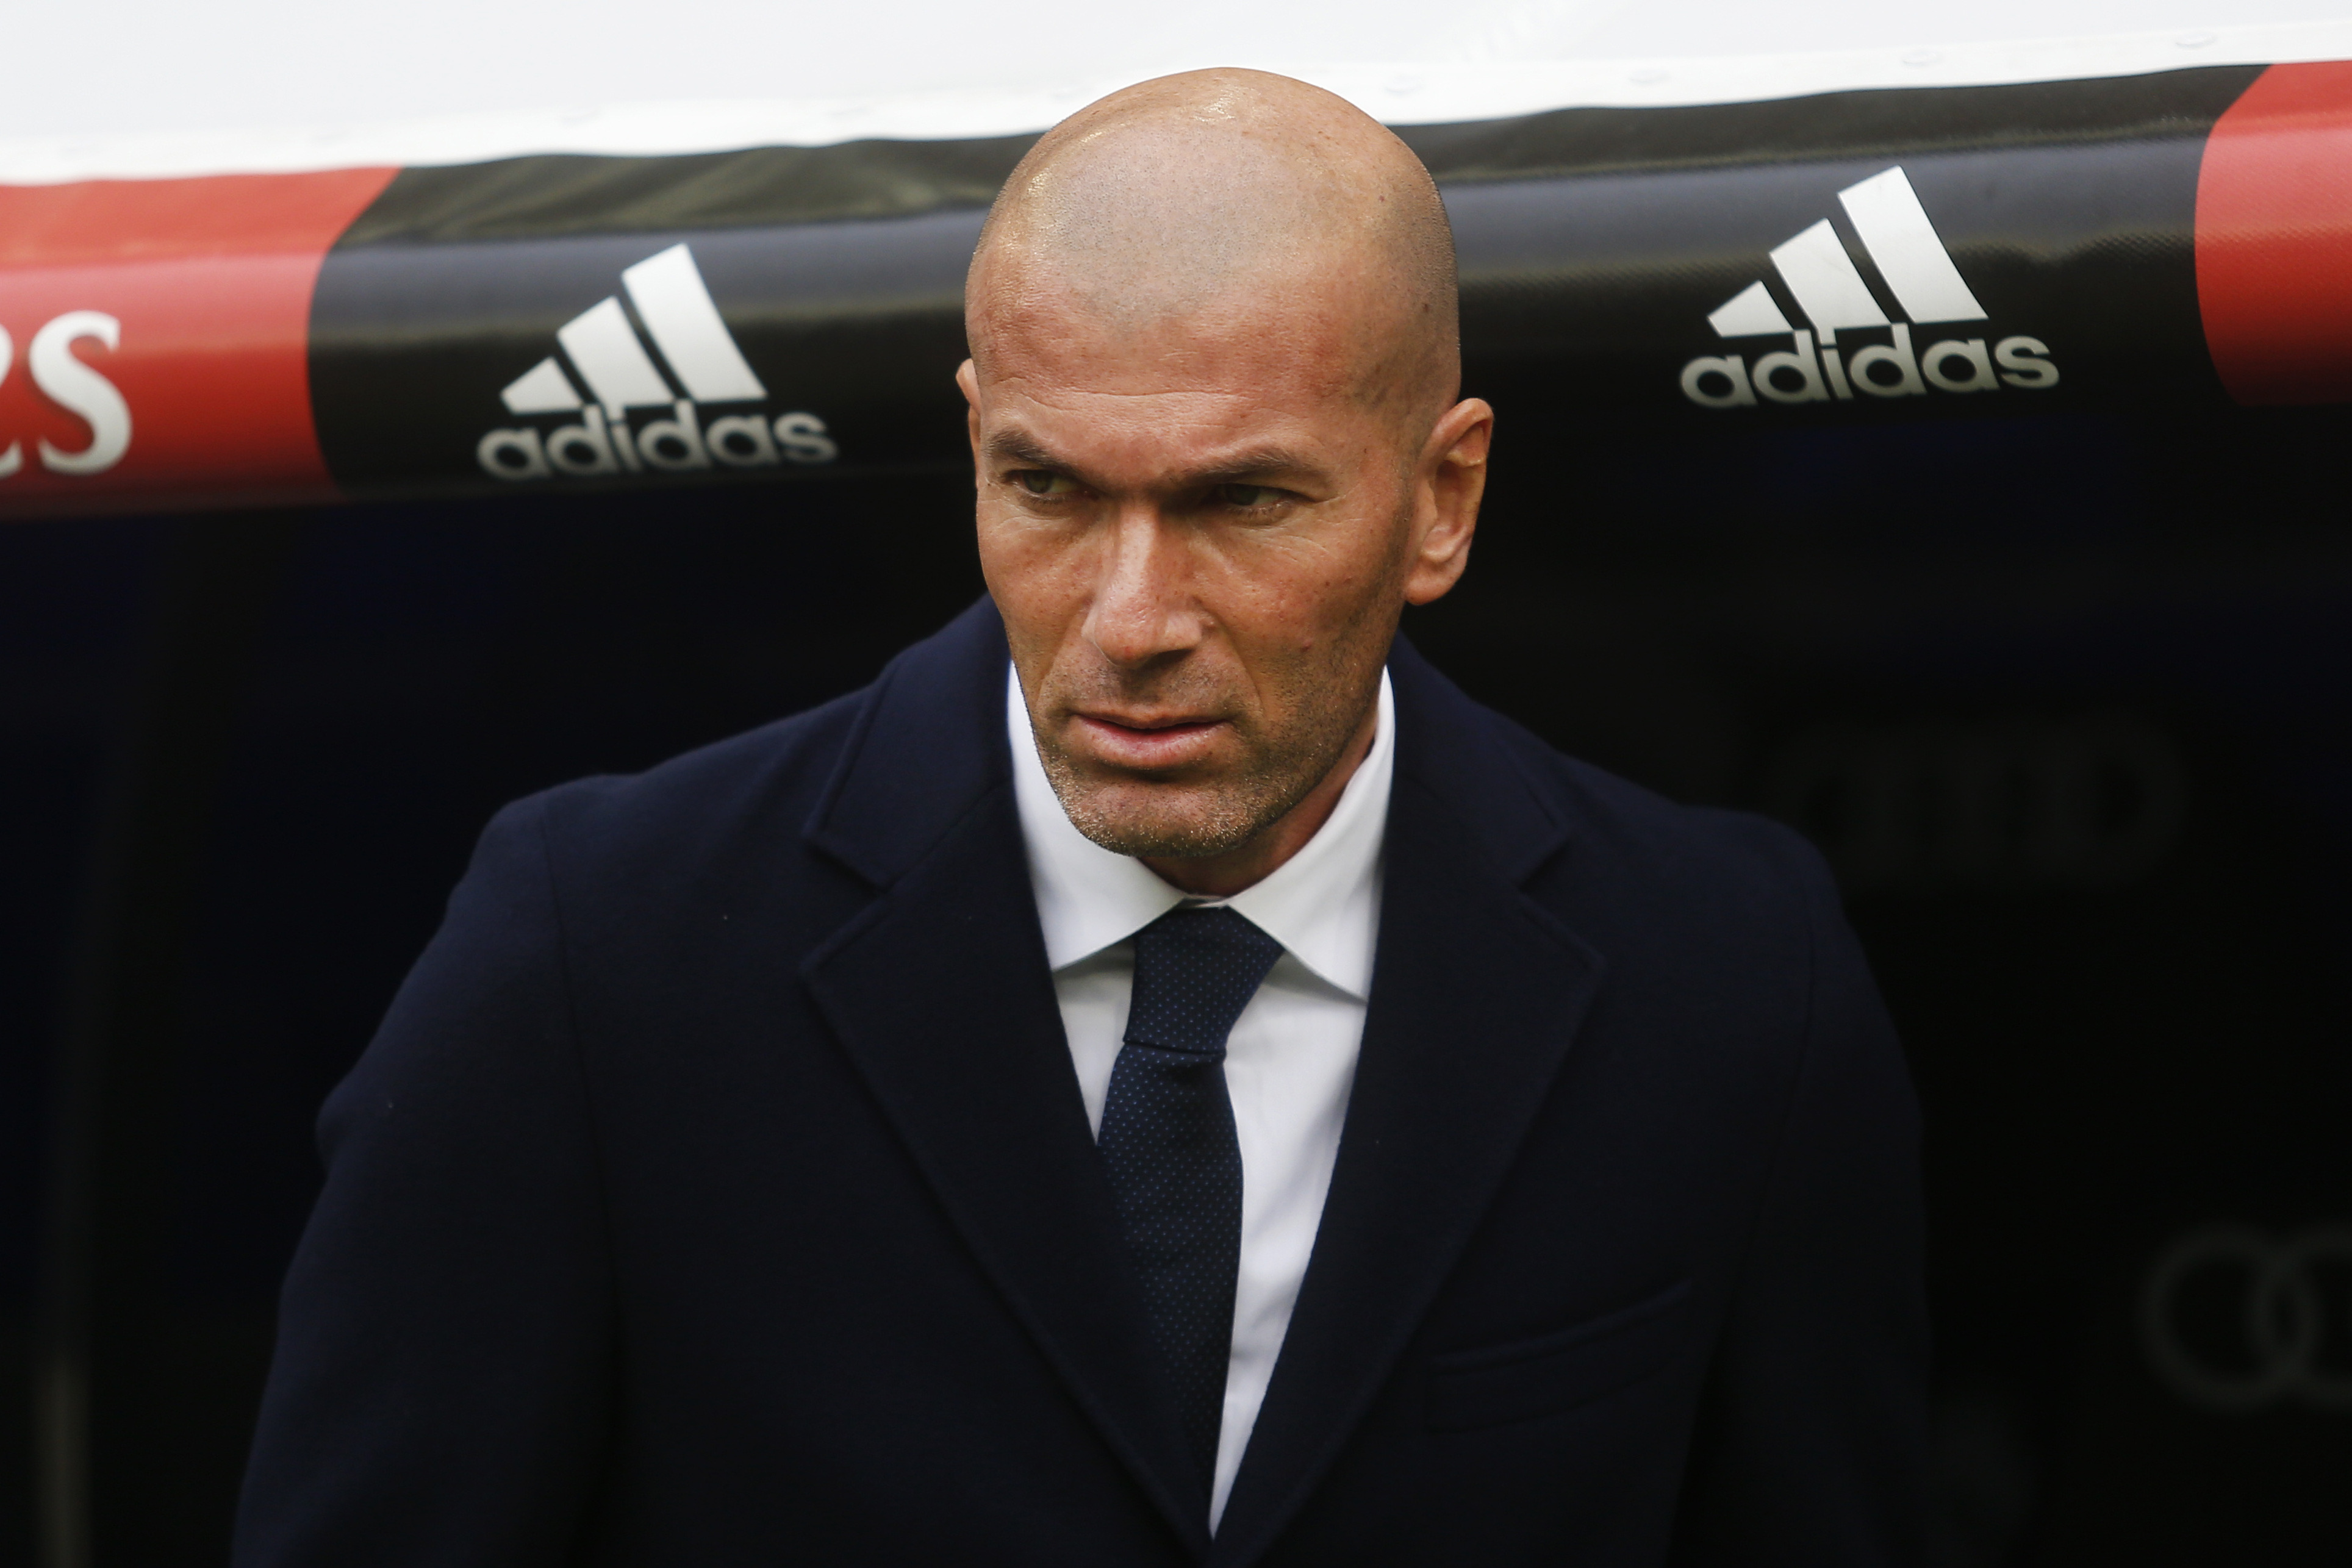 Zidane feels disappointed after the draw against Levante